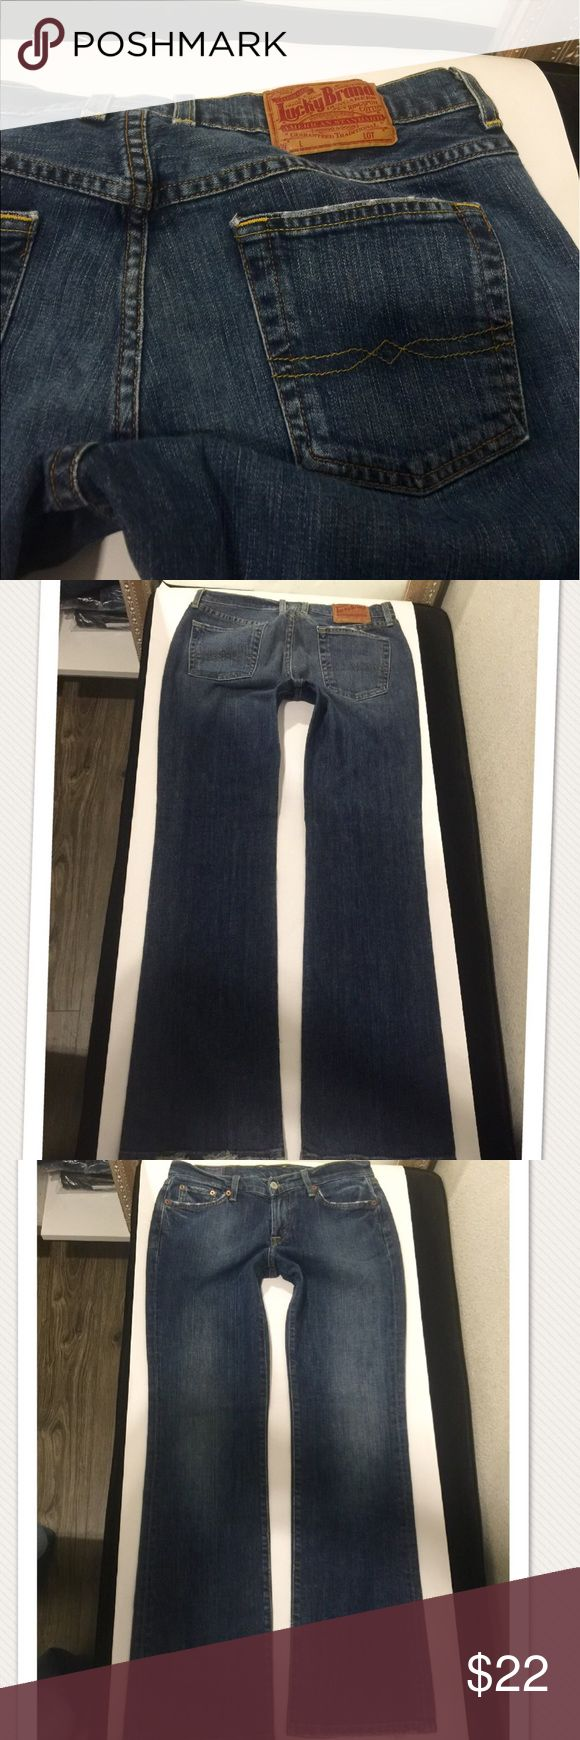 Lucky brand classic rider jeans size 28 nice!🍀😊 Classic rider Jean in excellent condition like new size 28 inseam 33 4% Lycra Lucky Brand Jeans